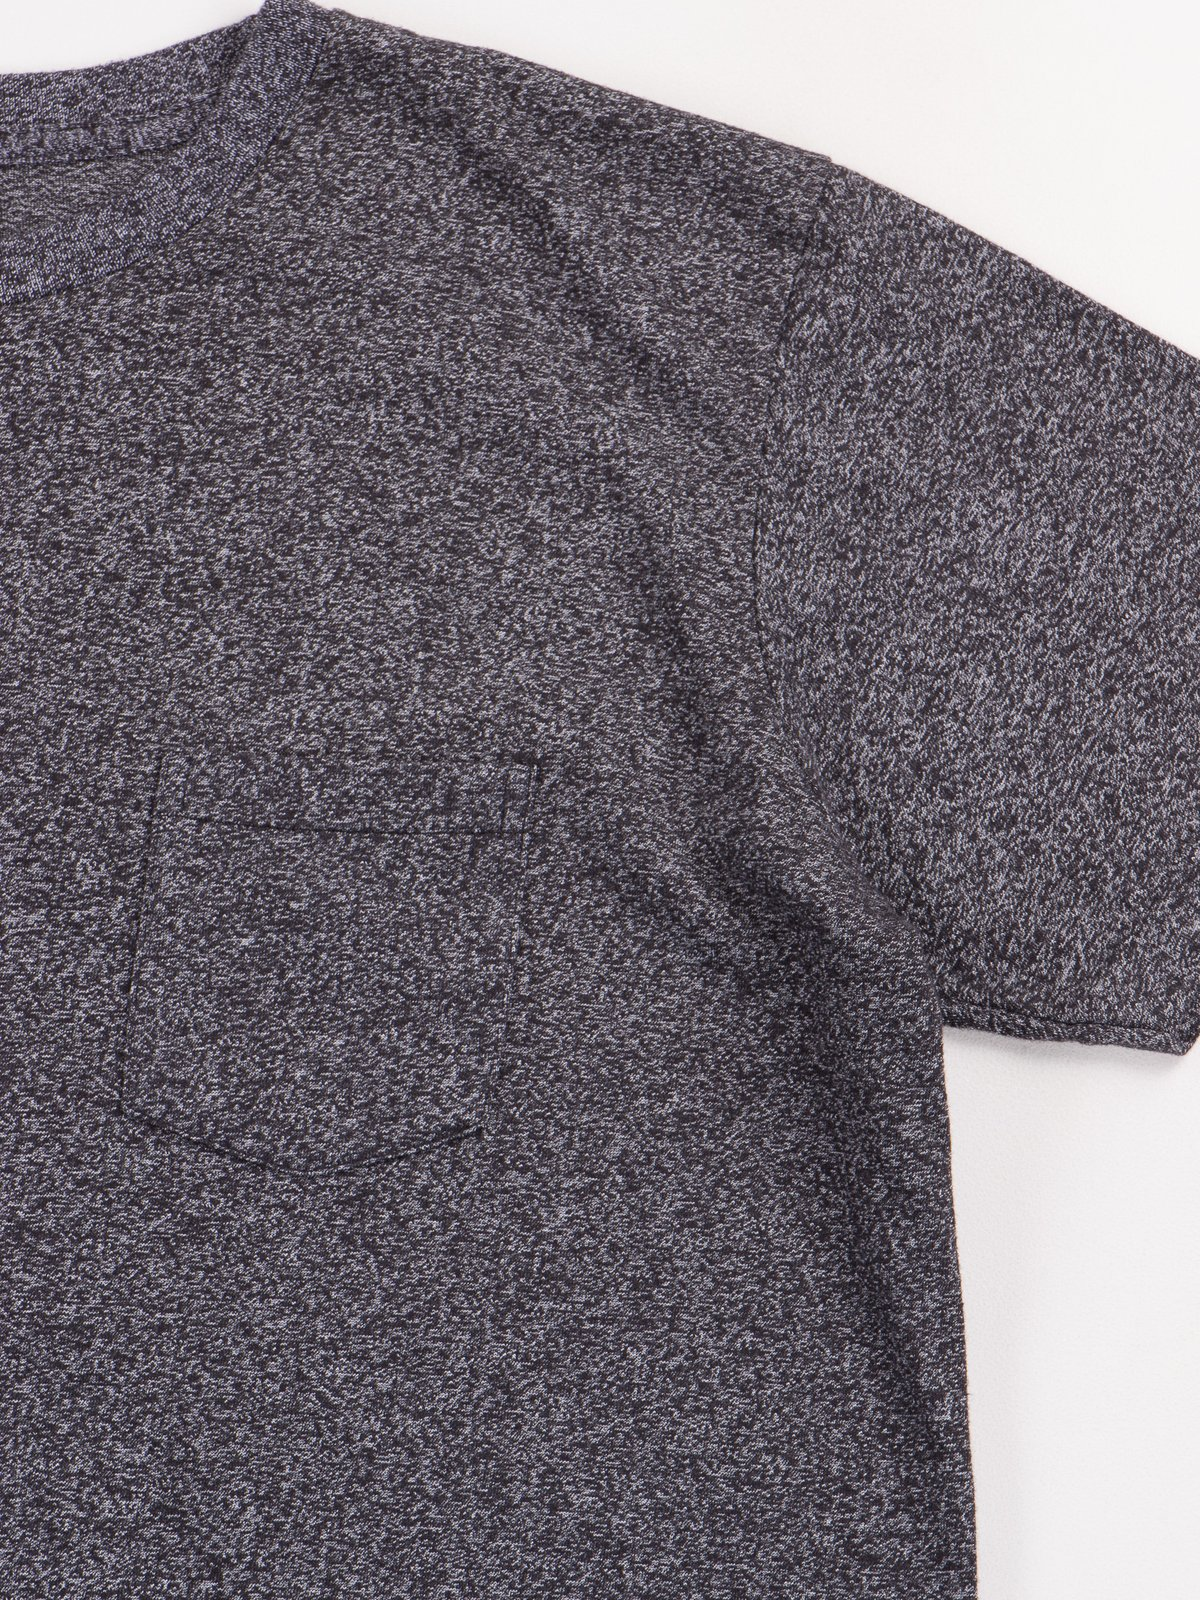 Heather Black 1–Pac Pocket Tee - Image 4